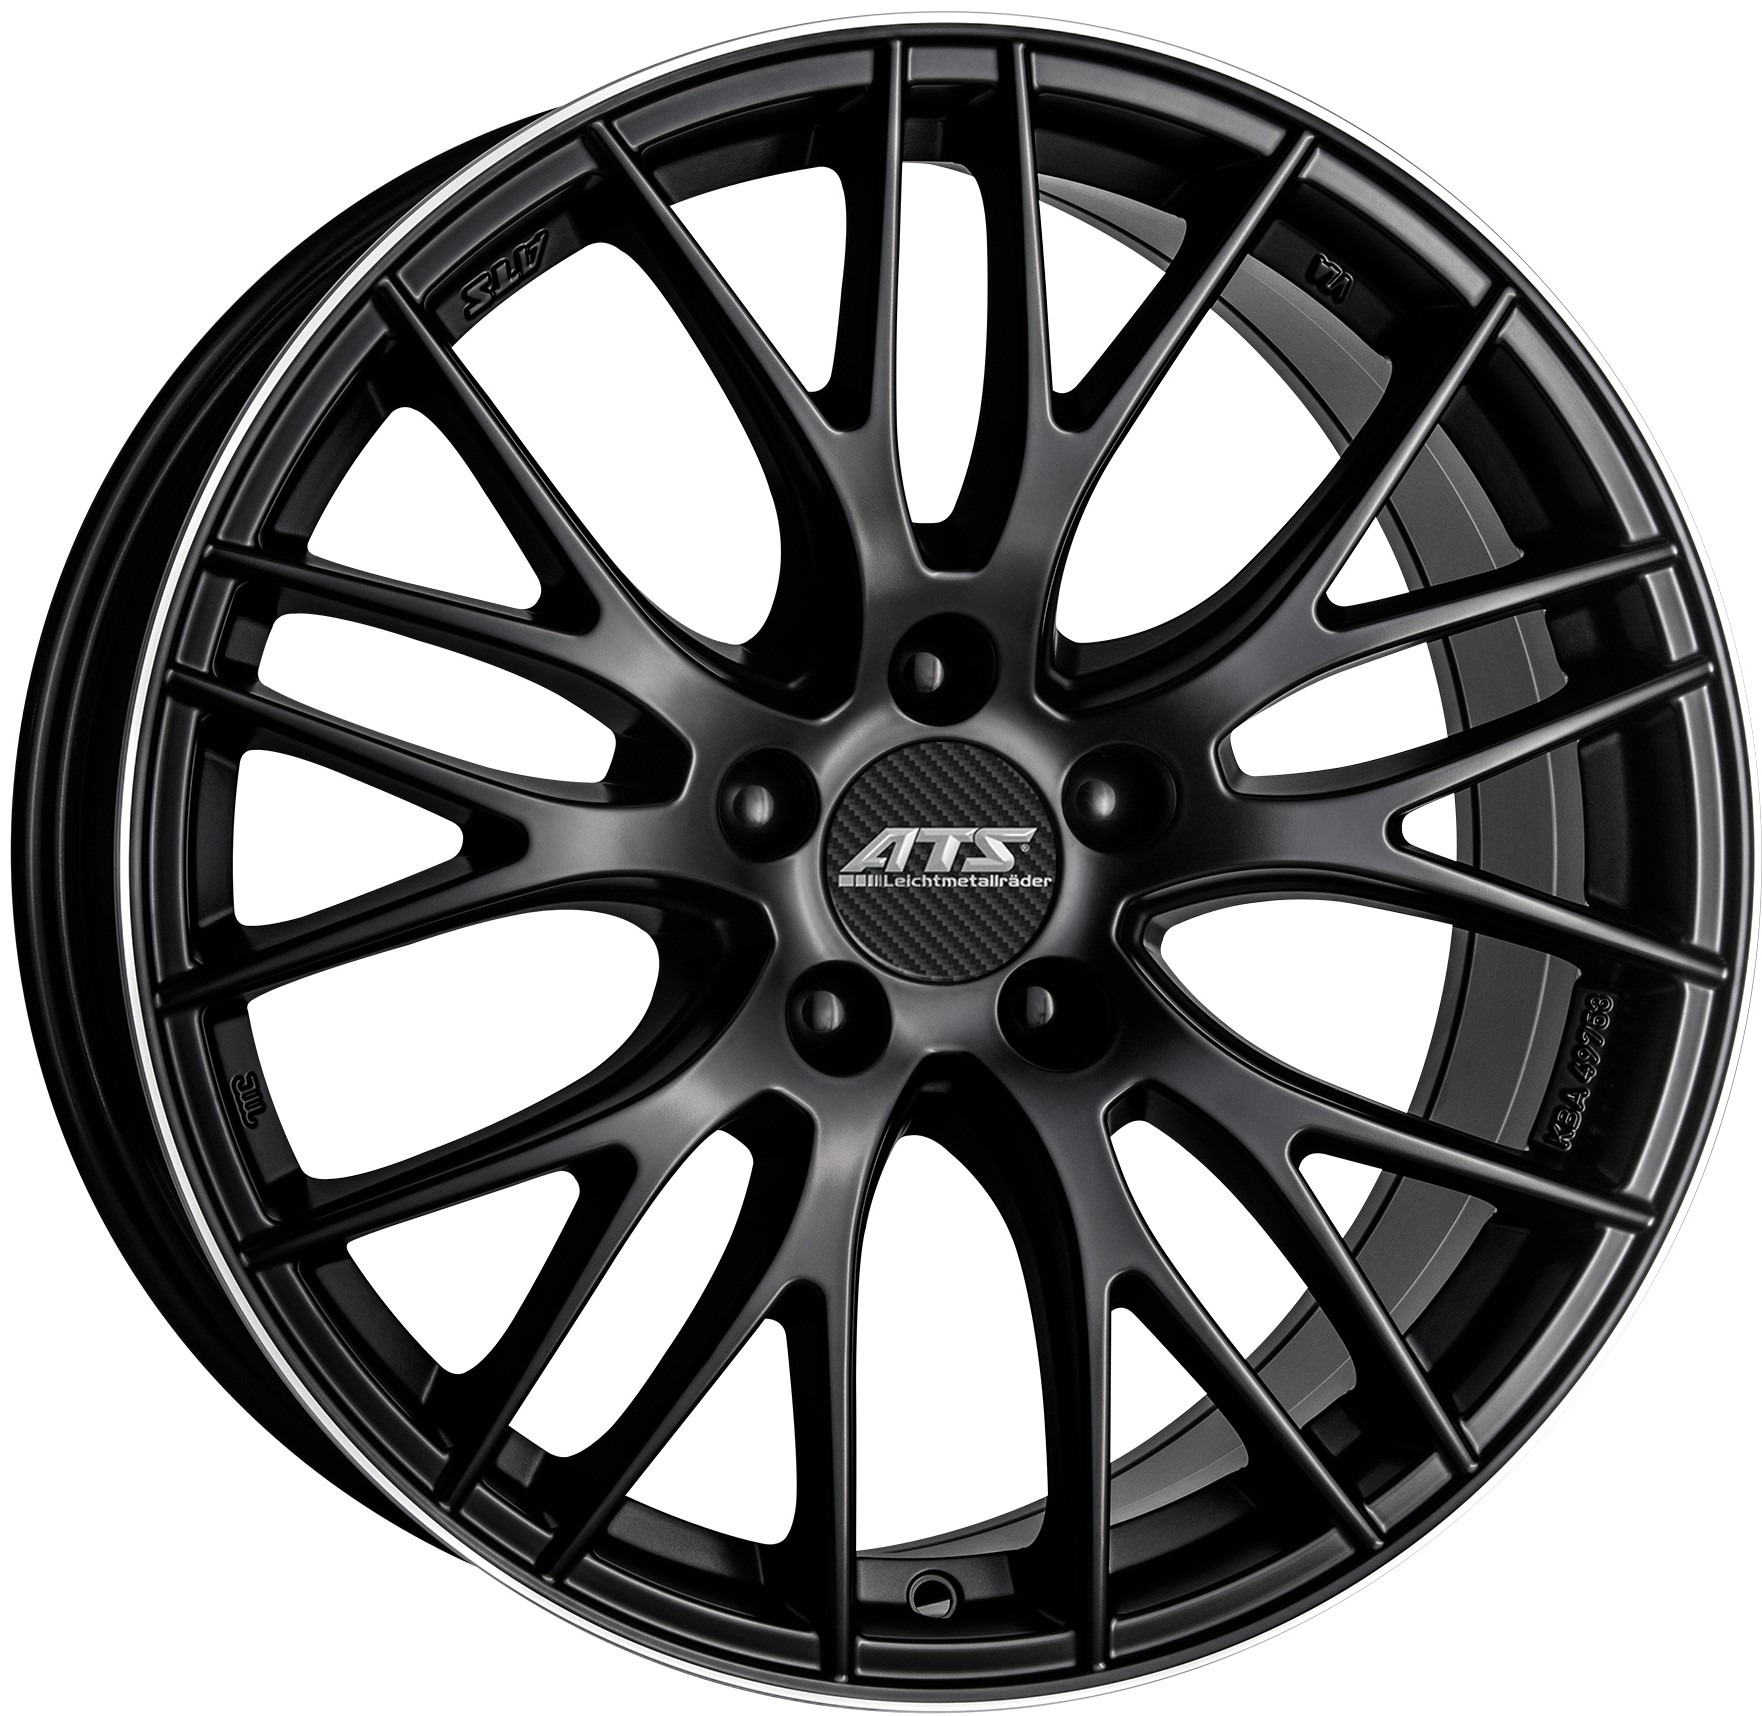 ATS - Perfektion (Racing Black / Polished)